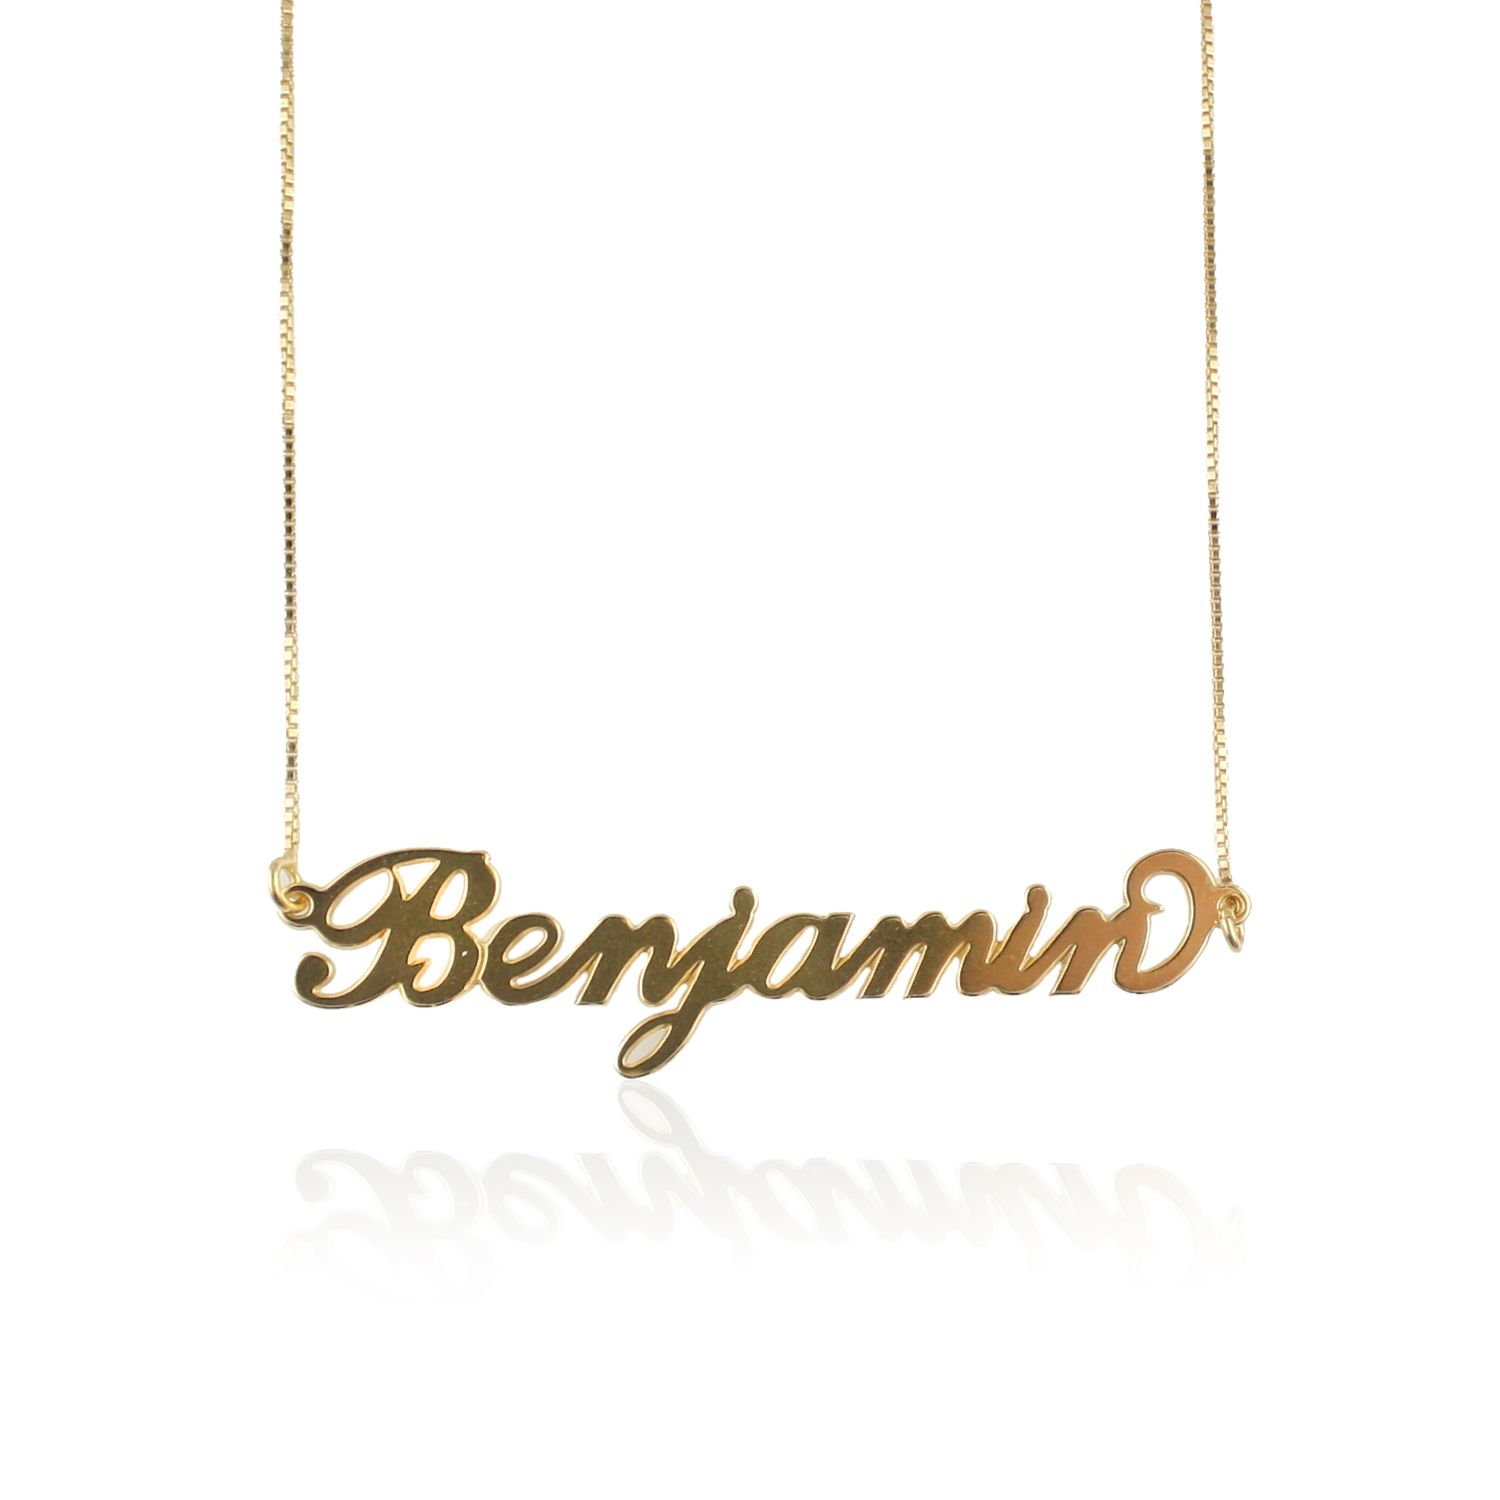 dp cursive pendant aolo amazon necklace jewelry com casual elizabeth name